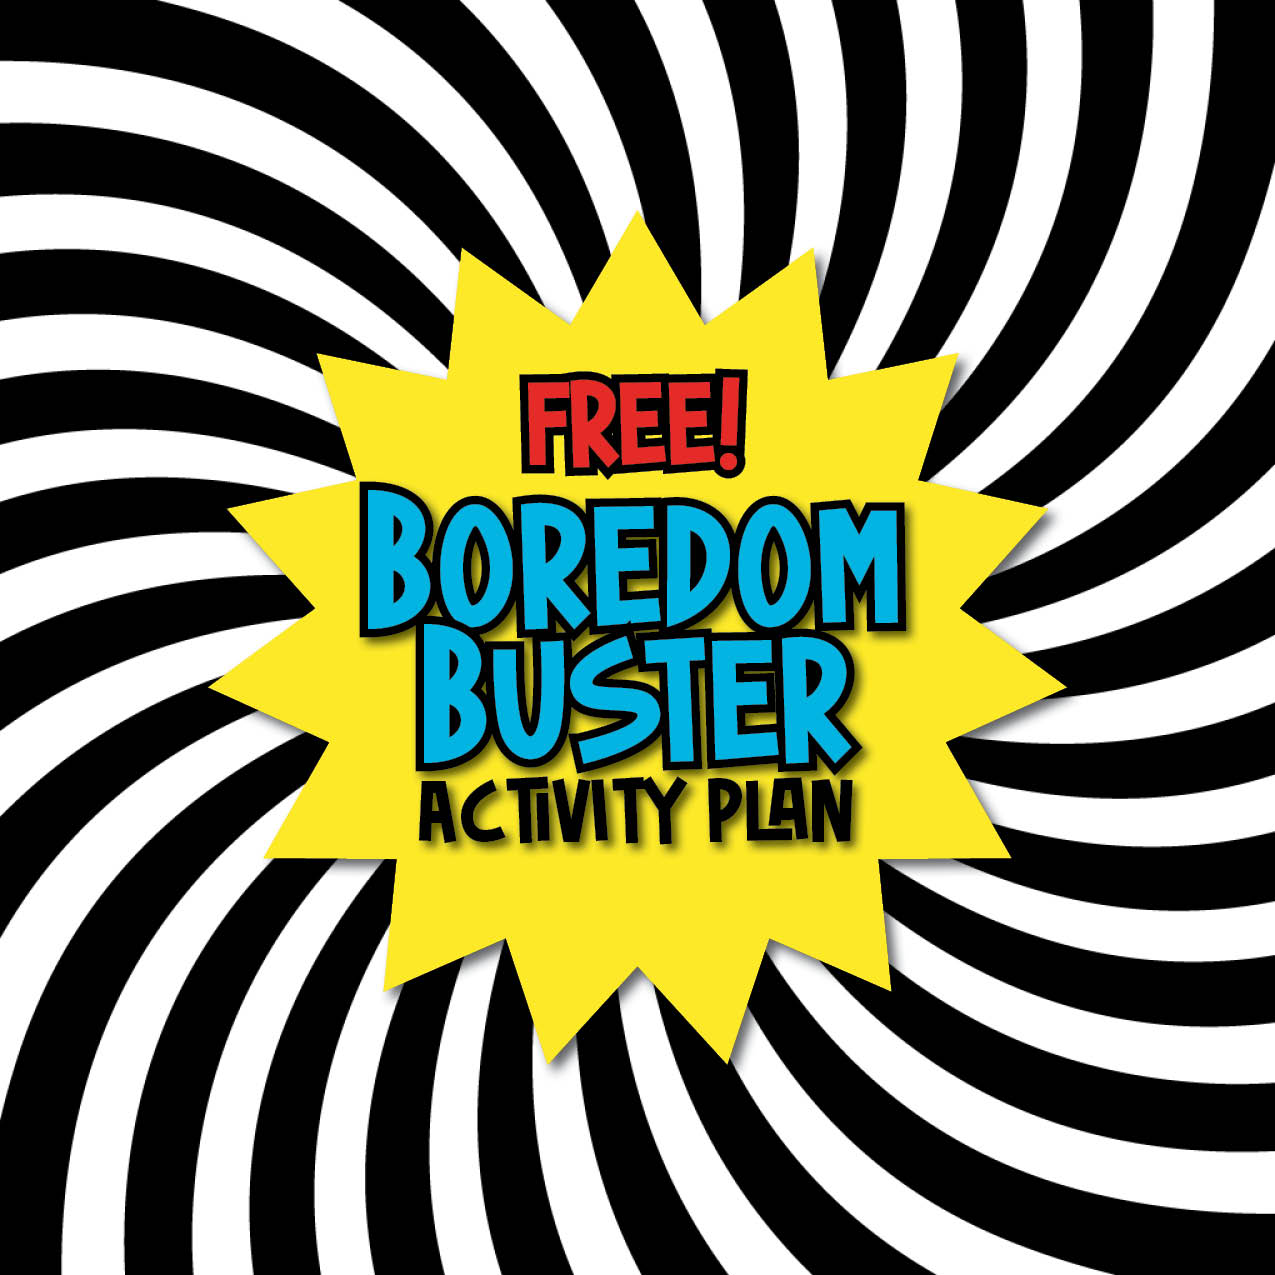 Free Boredom Buster Activity Plan for Kids filled with science, technology, engineering, art, and math